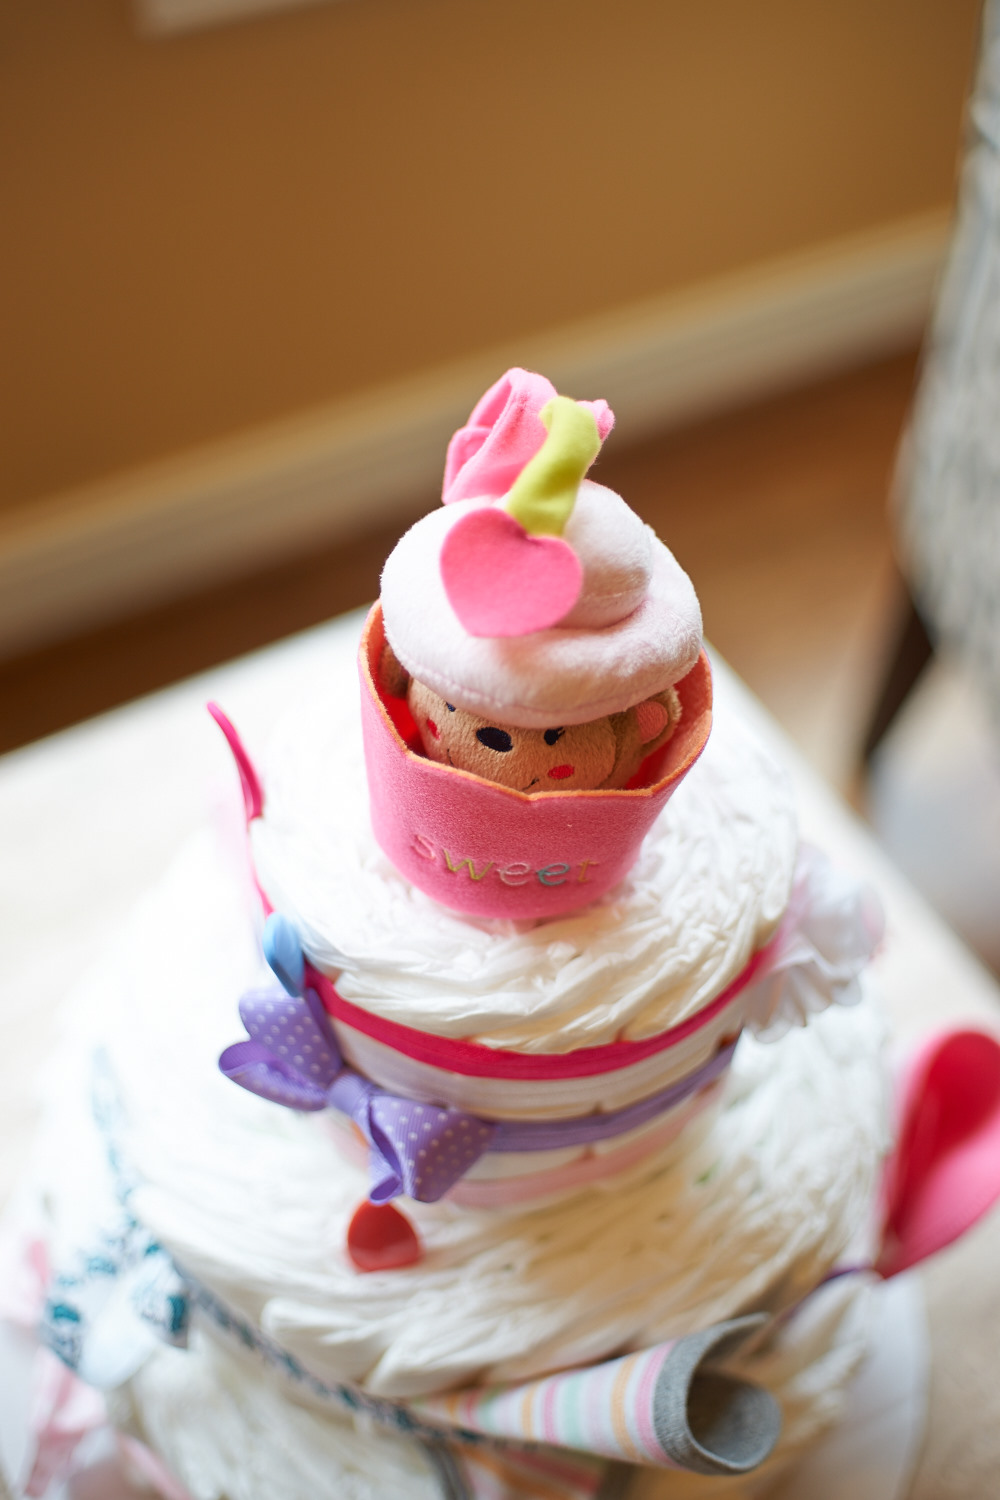 Surprise! There is a little monkey hidden inside of the cupcake. When you try to pull the monkey out, the entire cake shakes.. How cute!